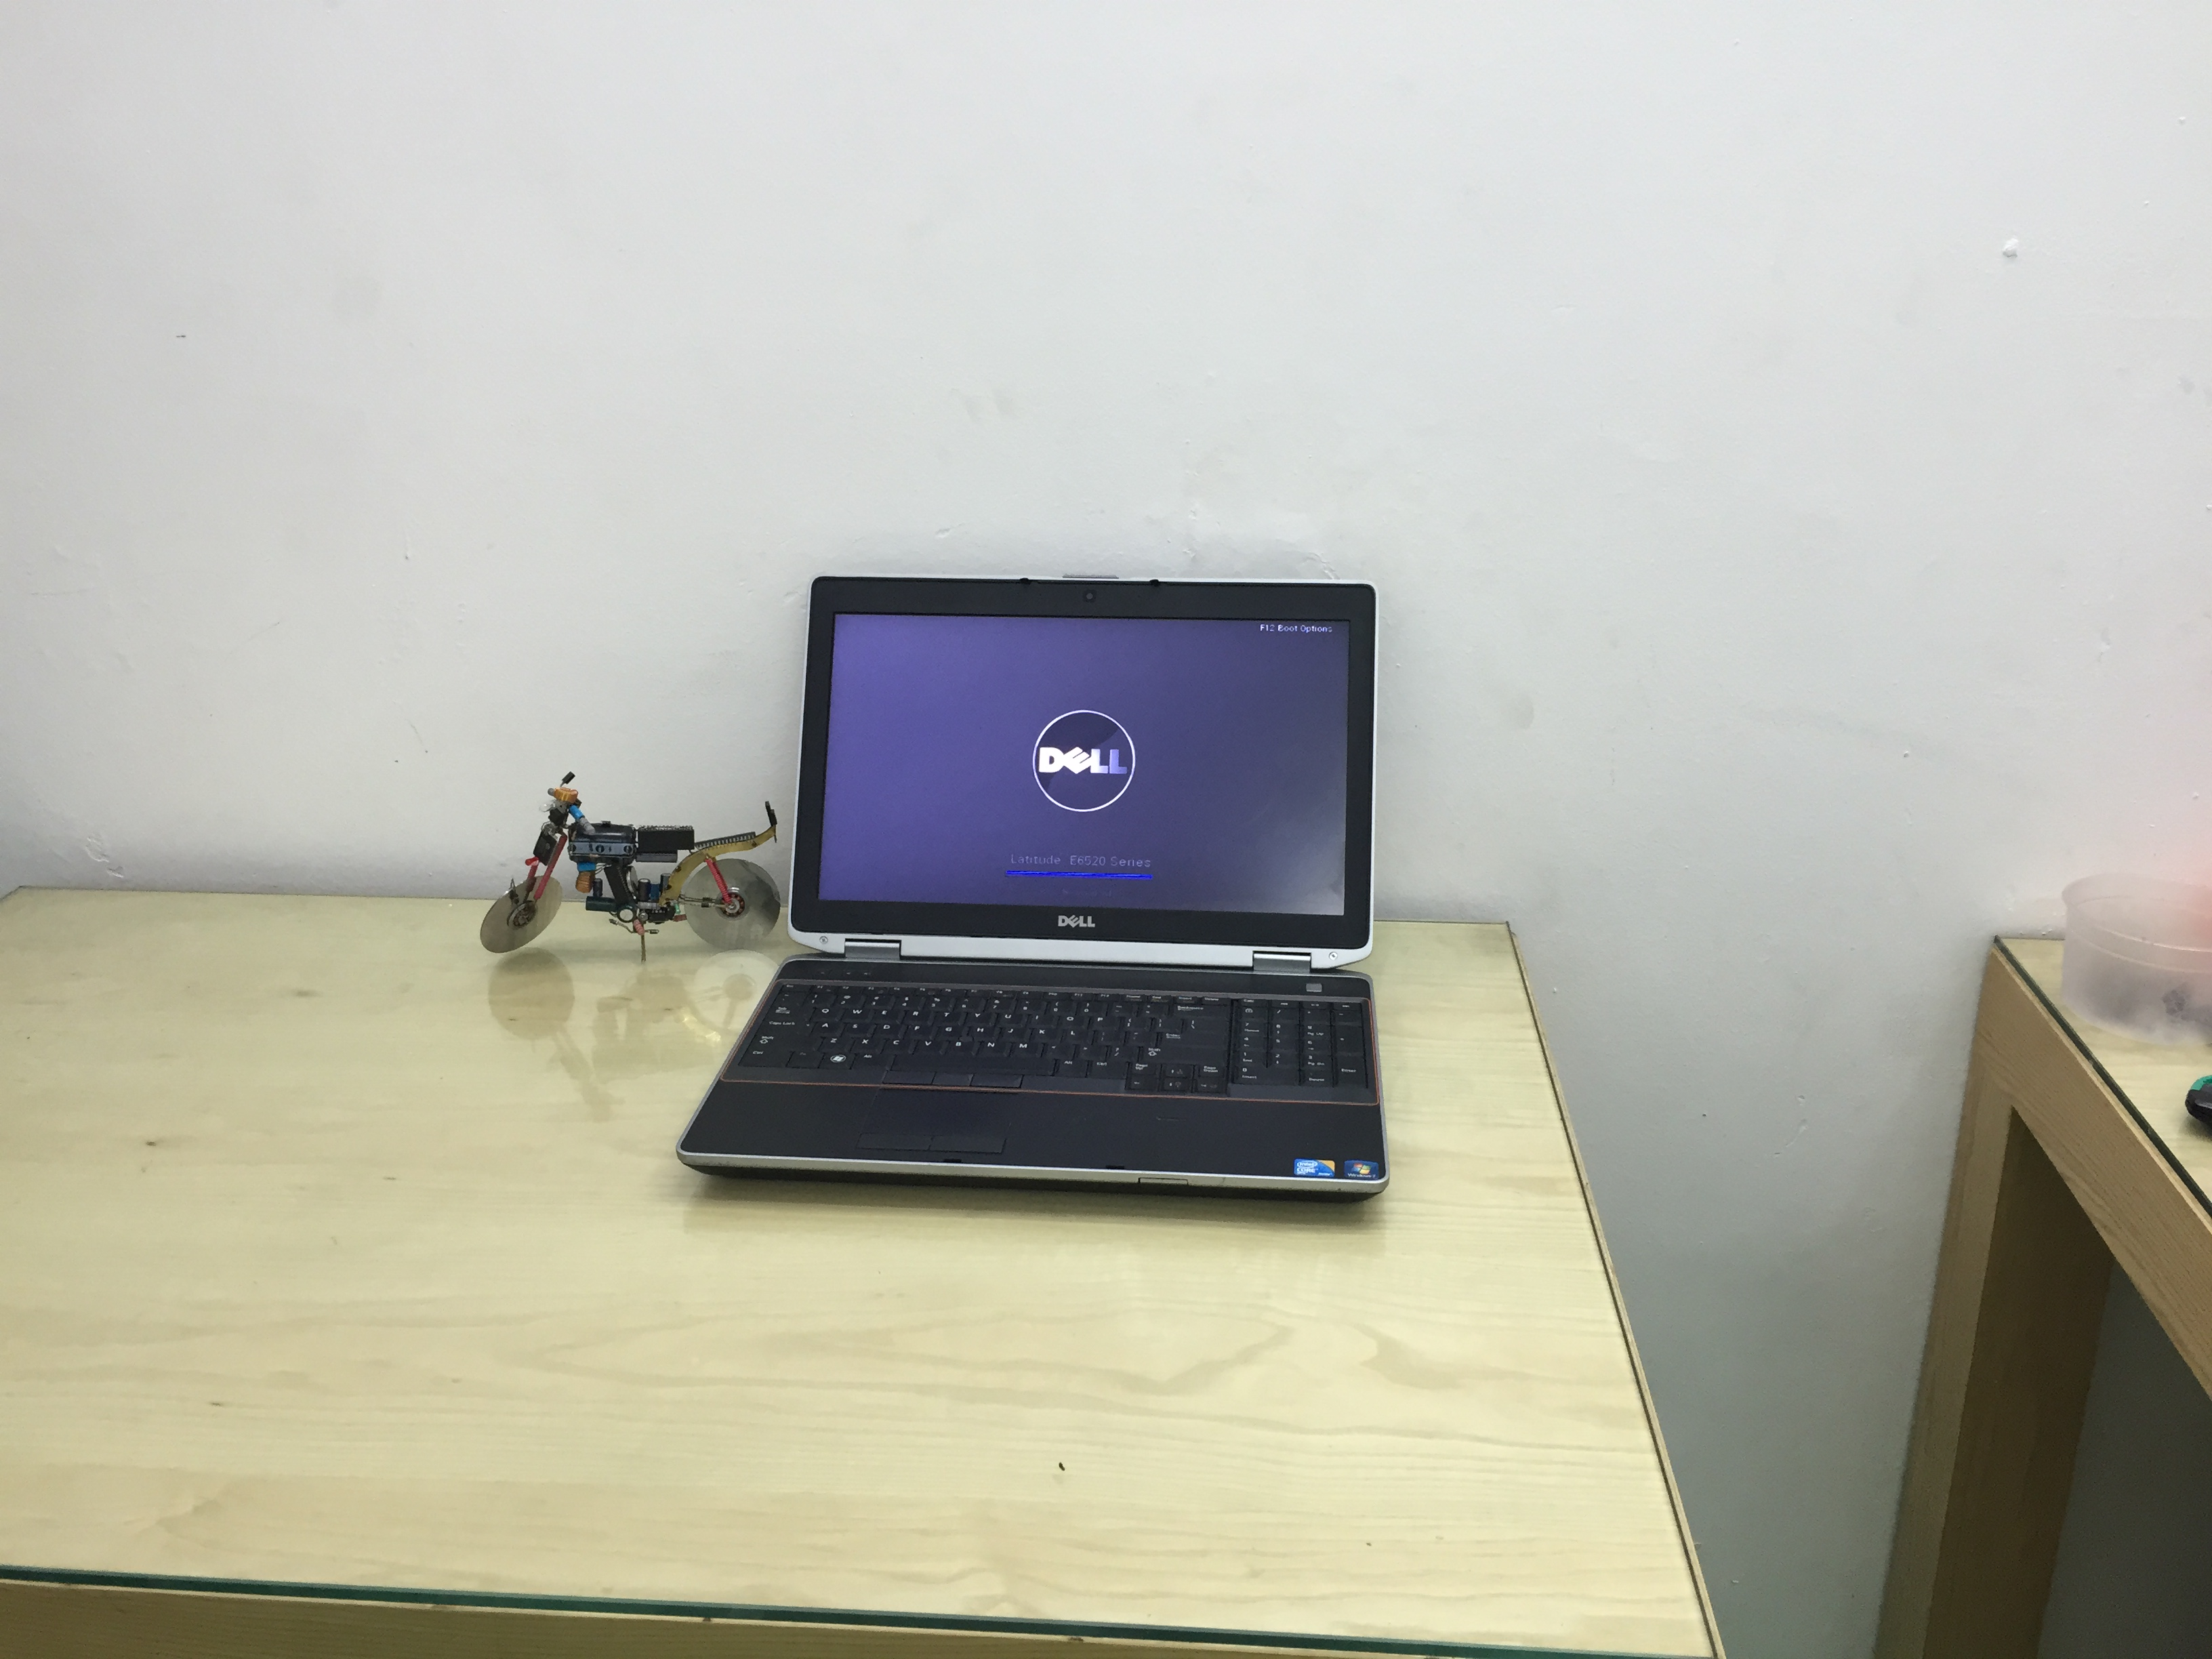 Laptop cũ Dell E6520 i5, Ram 4G, Ổ 250GB, VGA Rời, HD LED 15.6 inch HD+